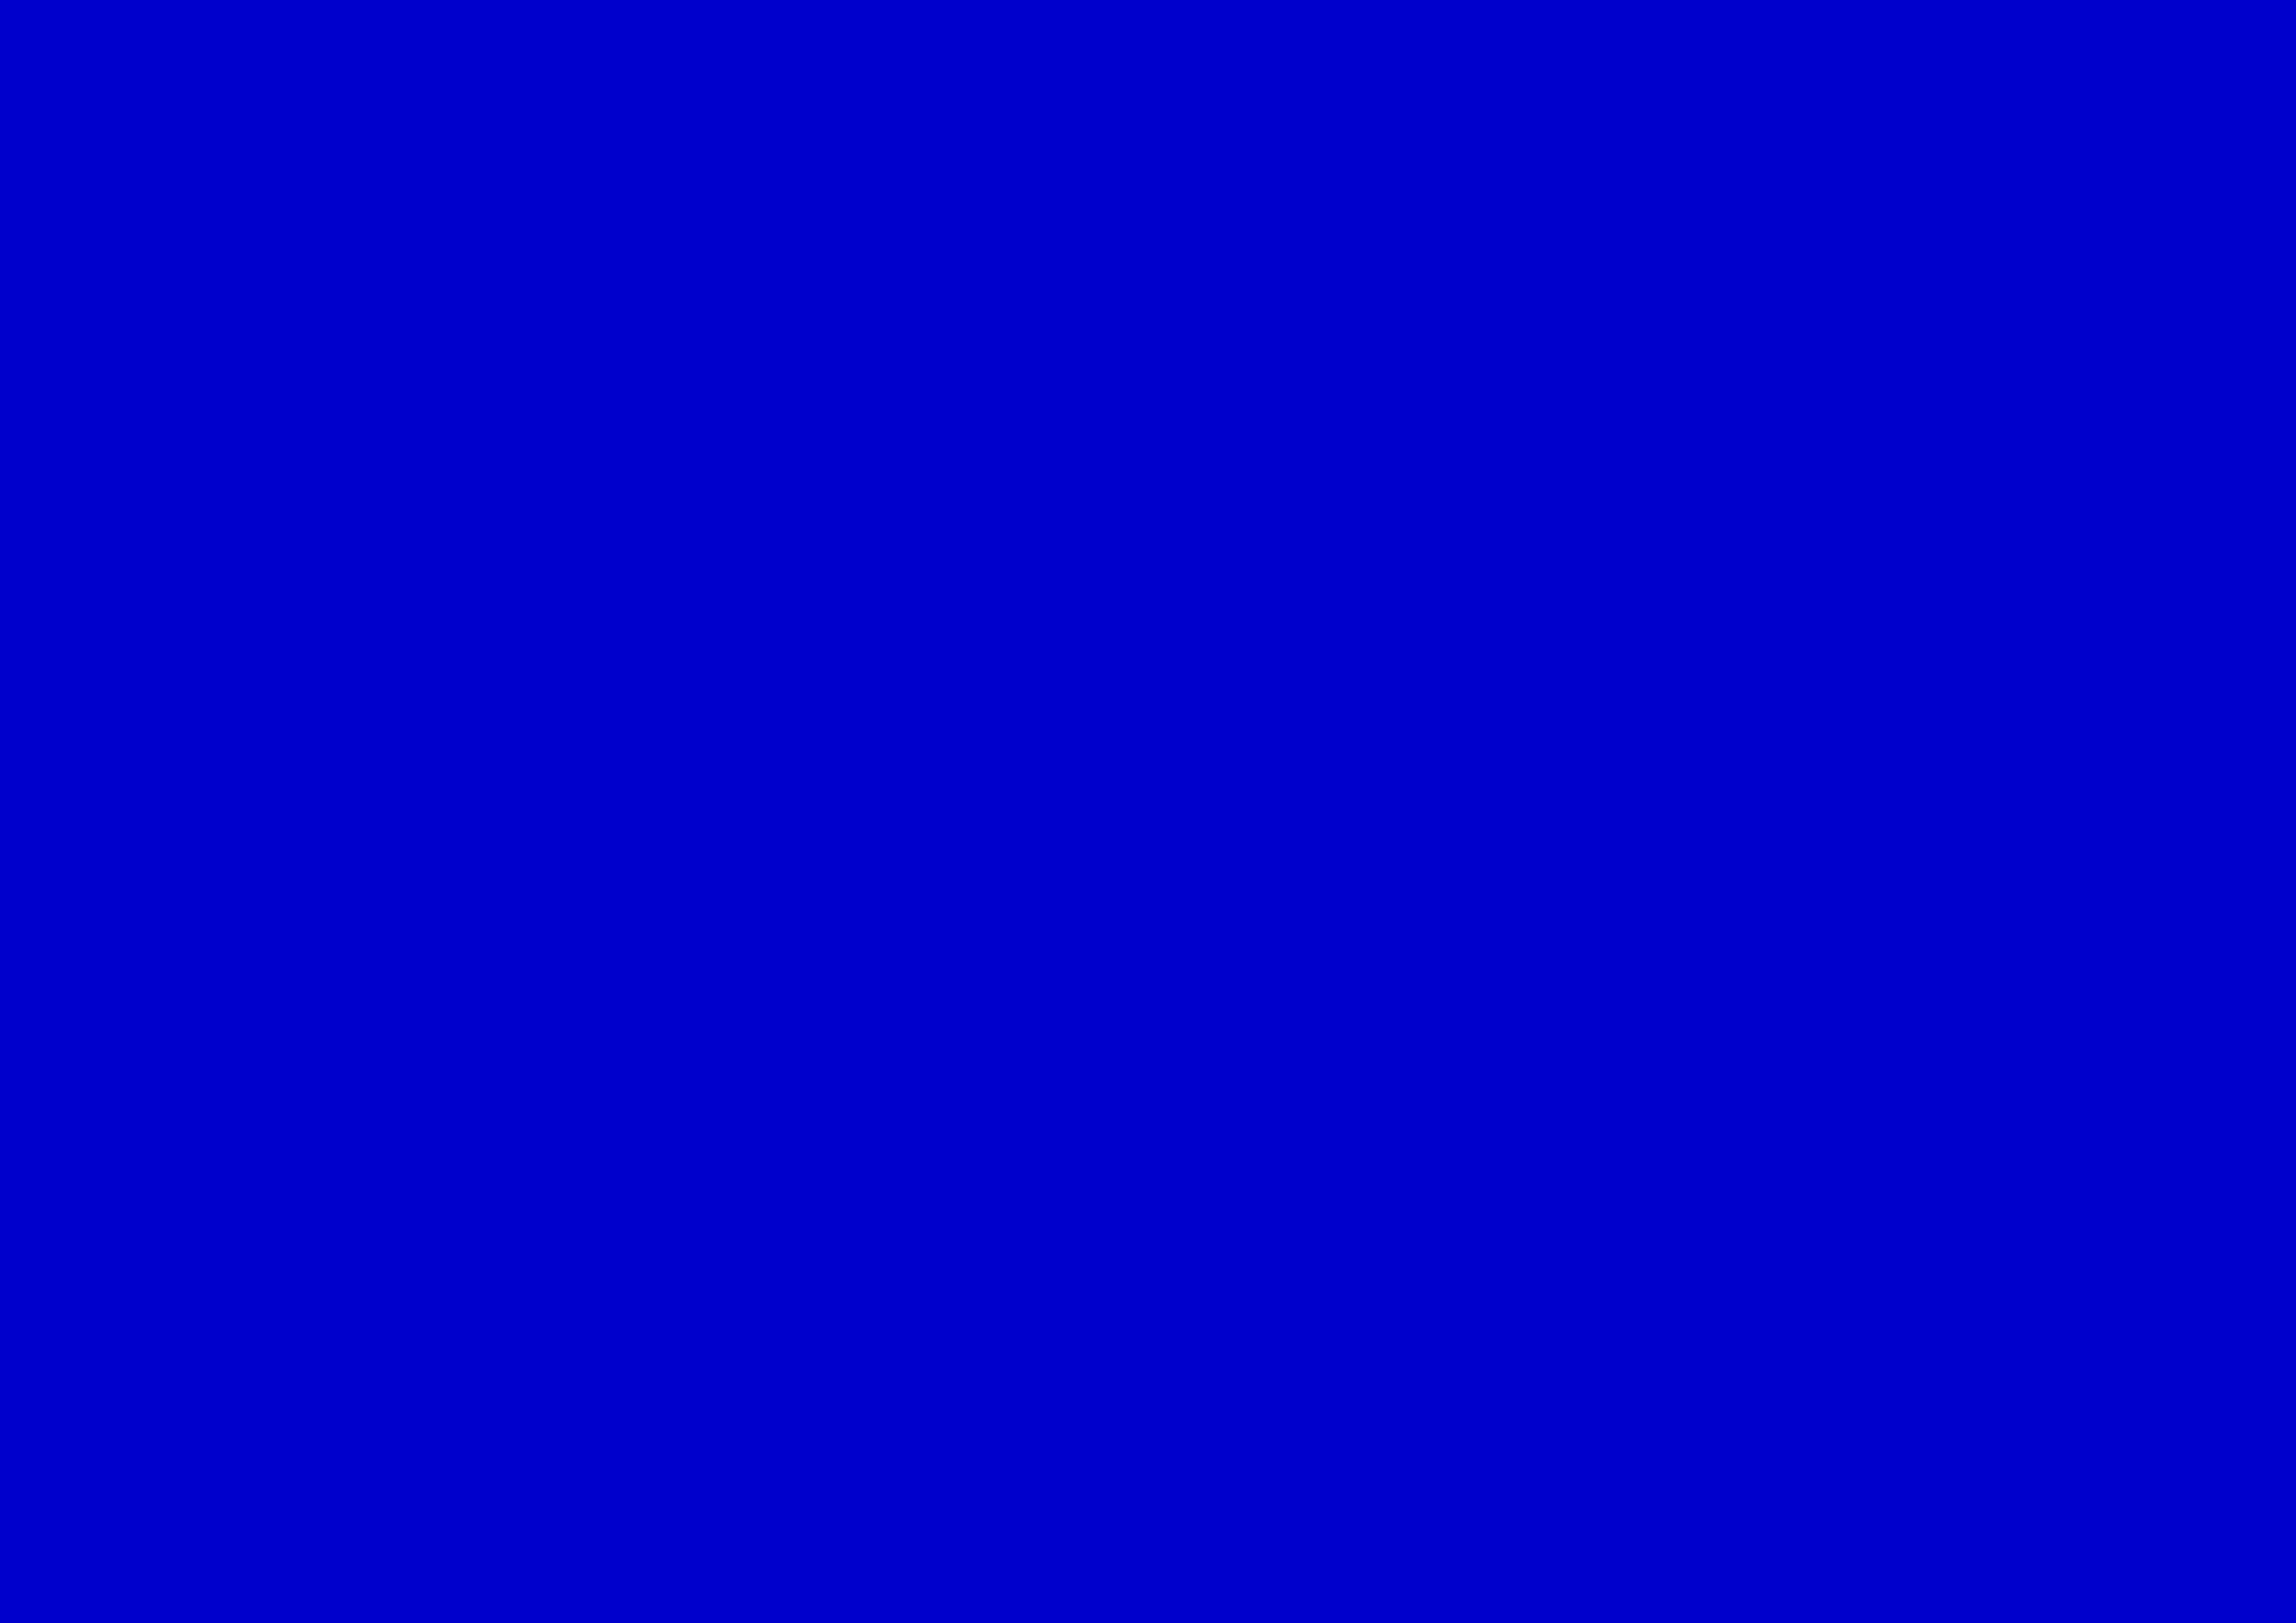 3508x2480 Medium Blue Solid Color Background